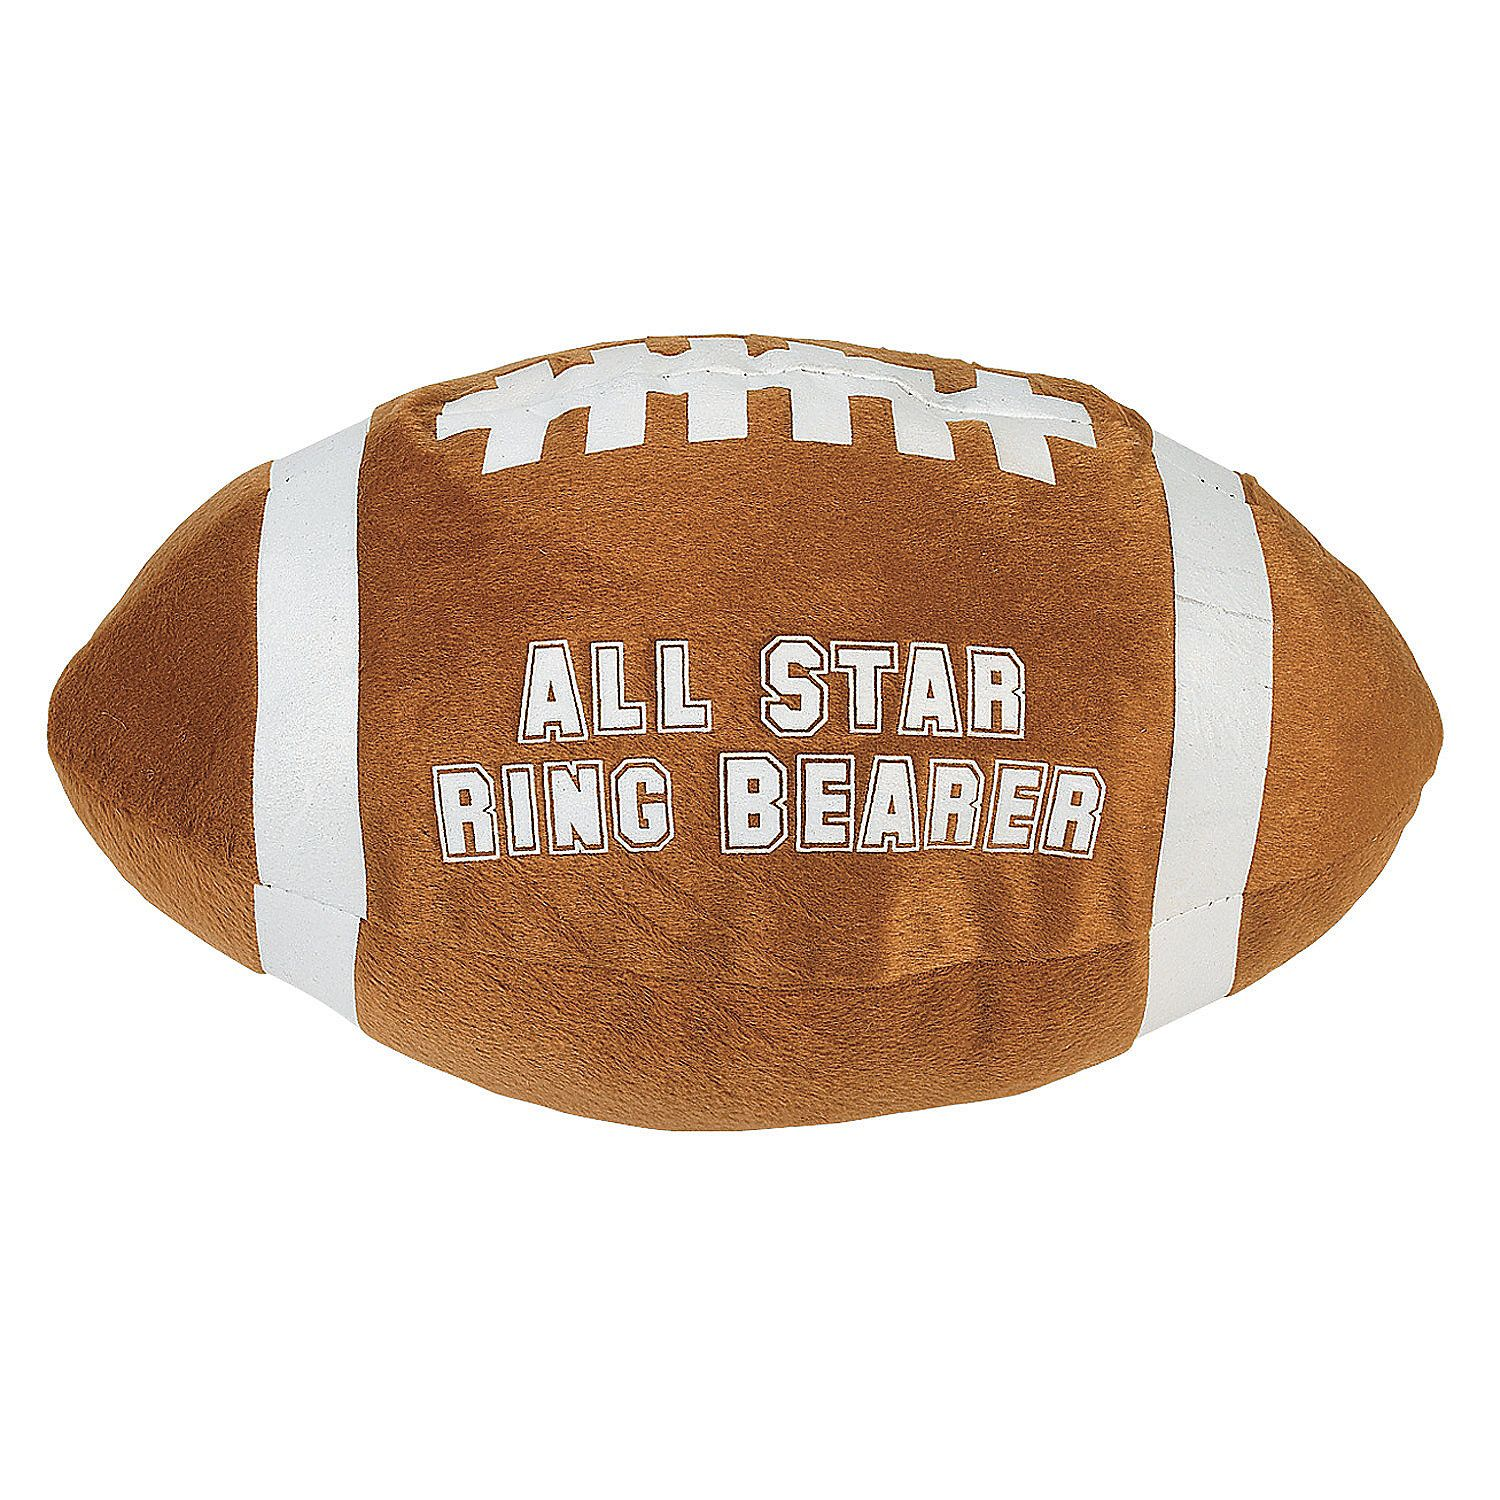 All Star Ring Bearer Plush Football Ring bearer Party gifts and